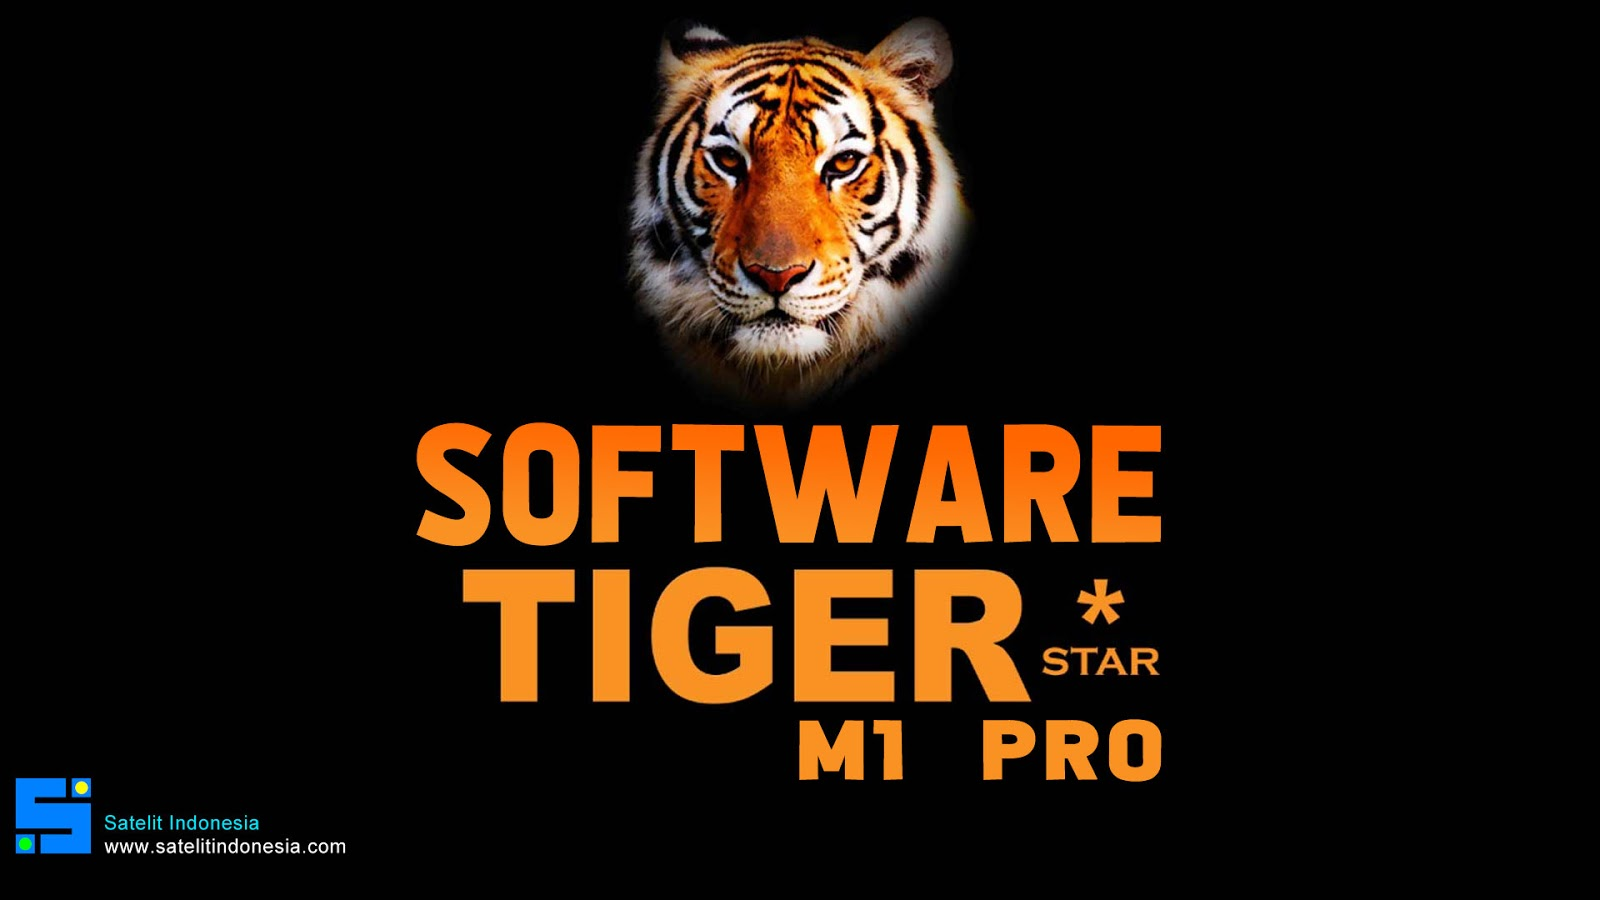 Download Software Tiger Star M1 Pro New Update Firmware Receiver